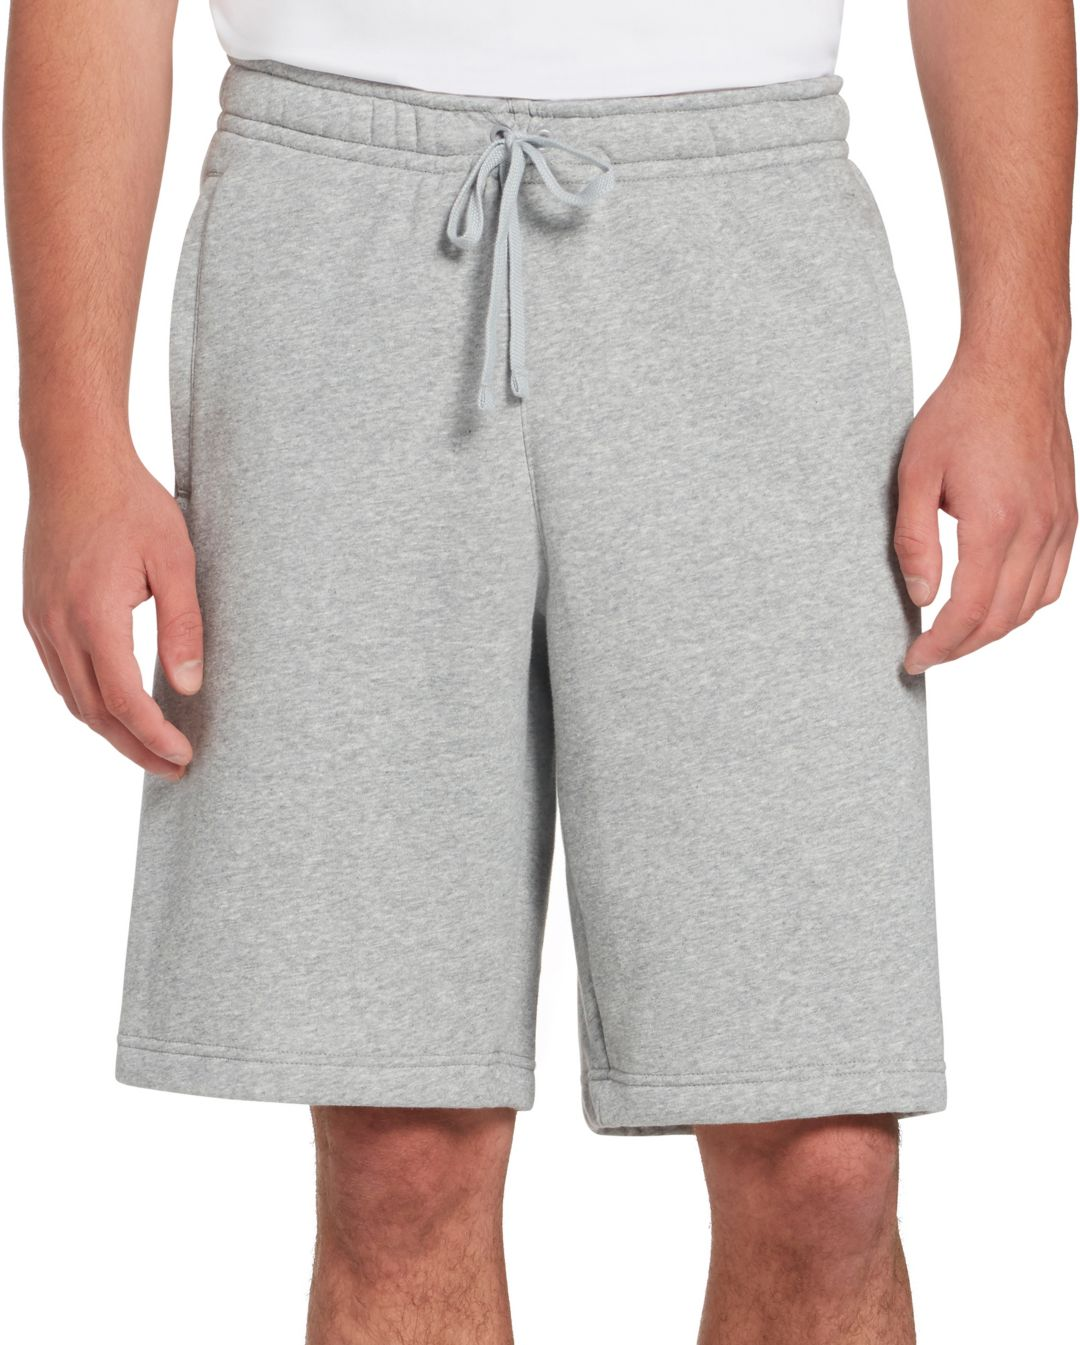 sneakers for cheap top-rated professional 100% high quality Nike Men's Sportswear Just Do It Fleece Shorts